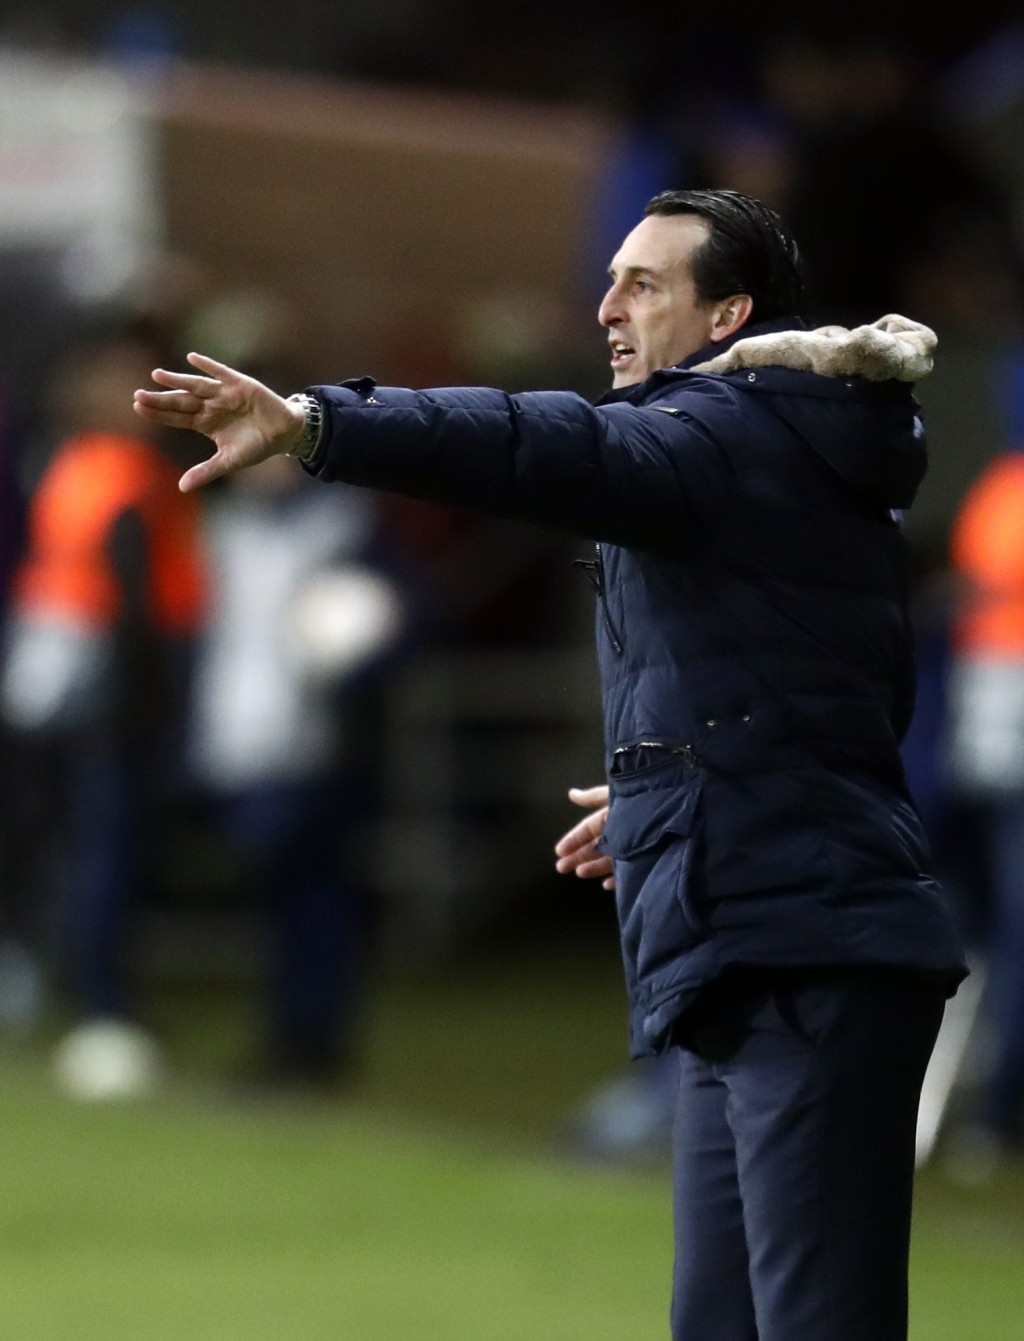 Arsenal coach Unai Emery, right, gives instructions to his players during the Europa League round of 32 first leg soccer match between Bate and Arsena...